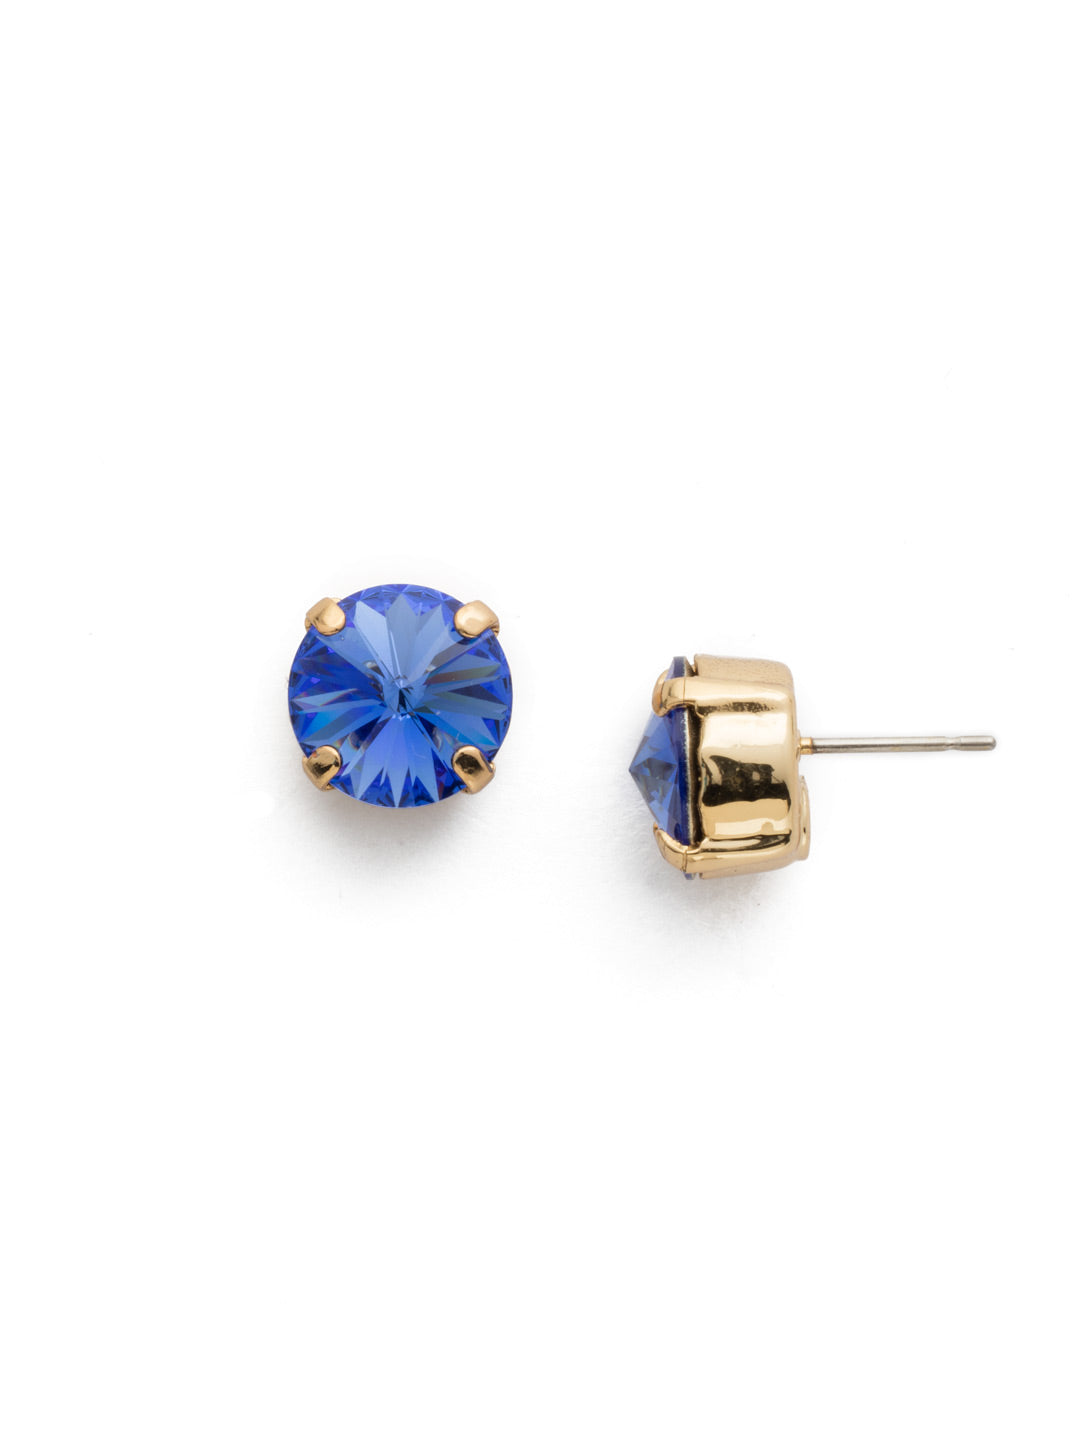 Round Crystal Stud Earrings - ECM14BGSAP